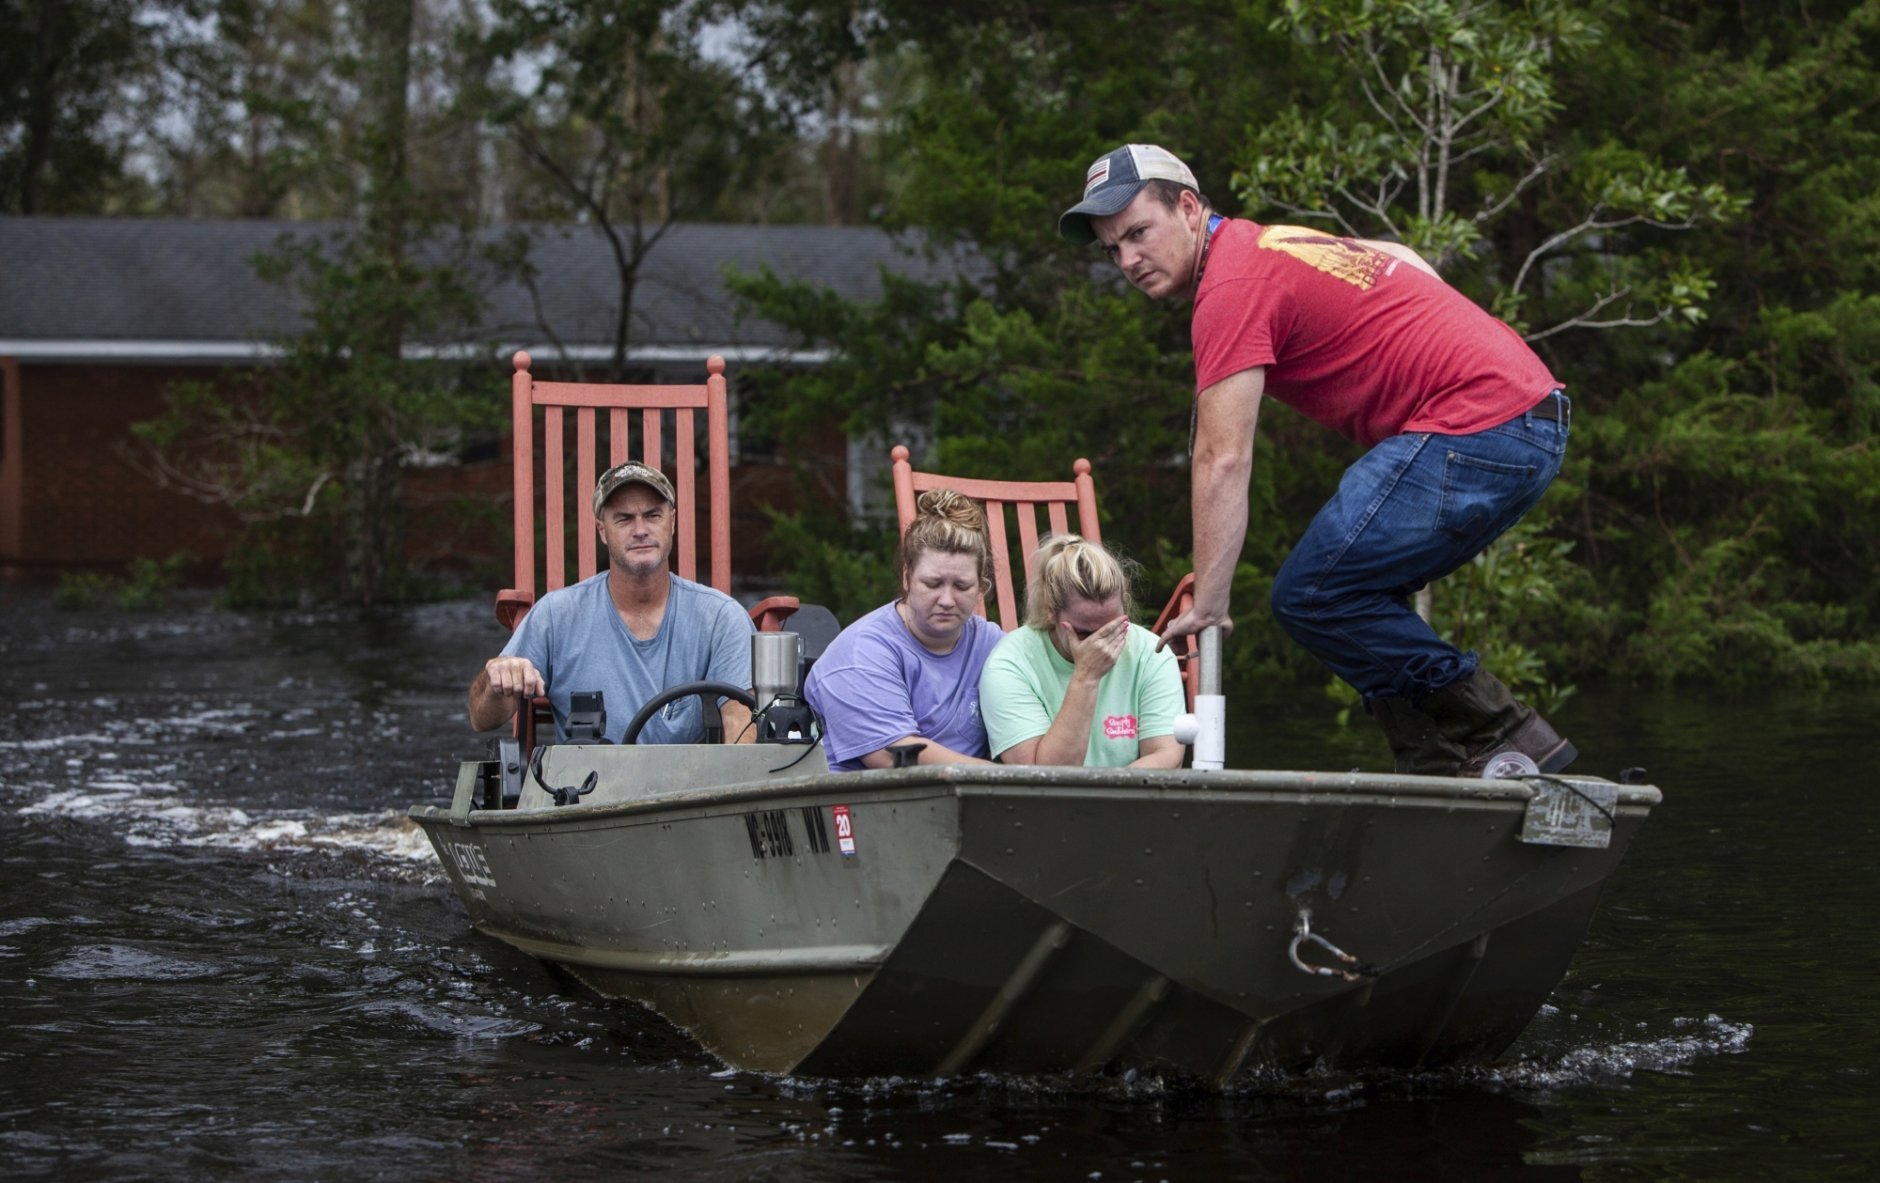 From left, Mike Haddock, 48, Katlyn Humphrey, 19, Michelle Haddock, 45, and Justin Humphrey, 24, remove possessions from the Haddock's flooded home using a jon boat Monday, Sept. 17, 2018 in Trenton, N.C. following Hurricane Florence. (Travis Long/The News & Observer via AP)